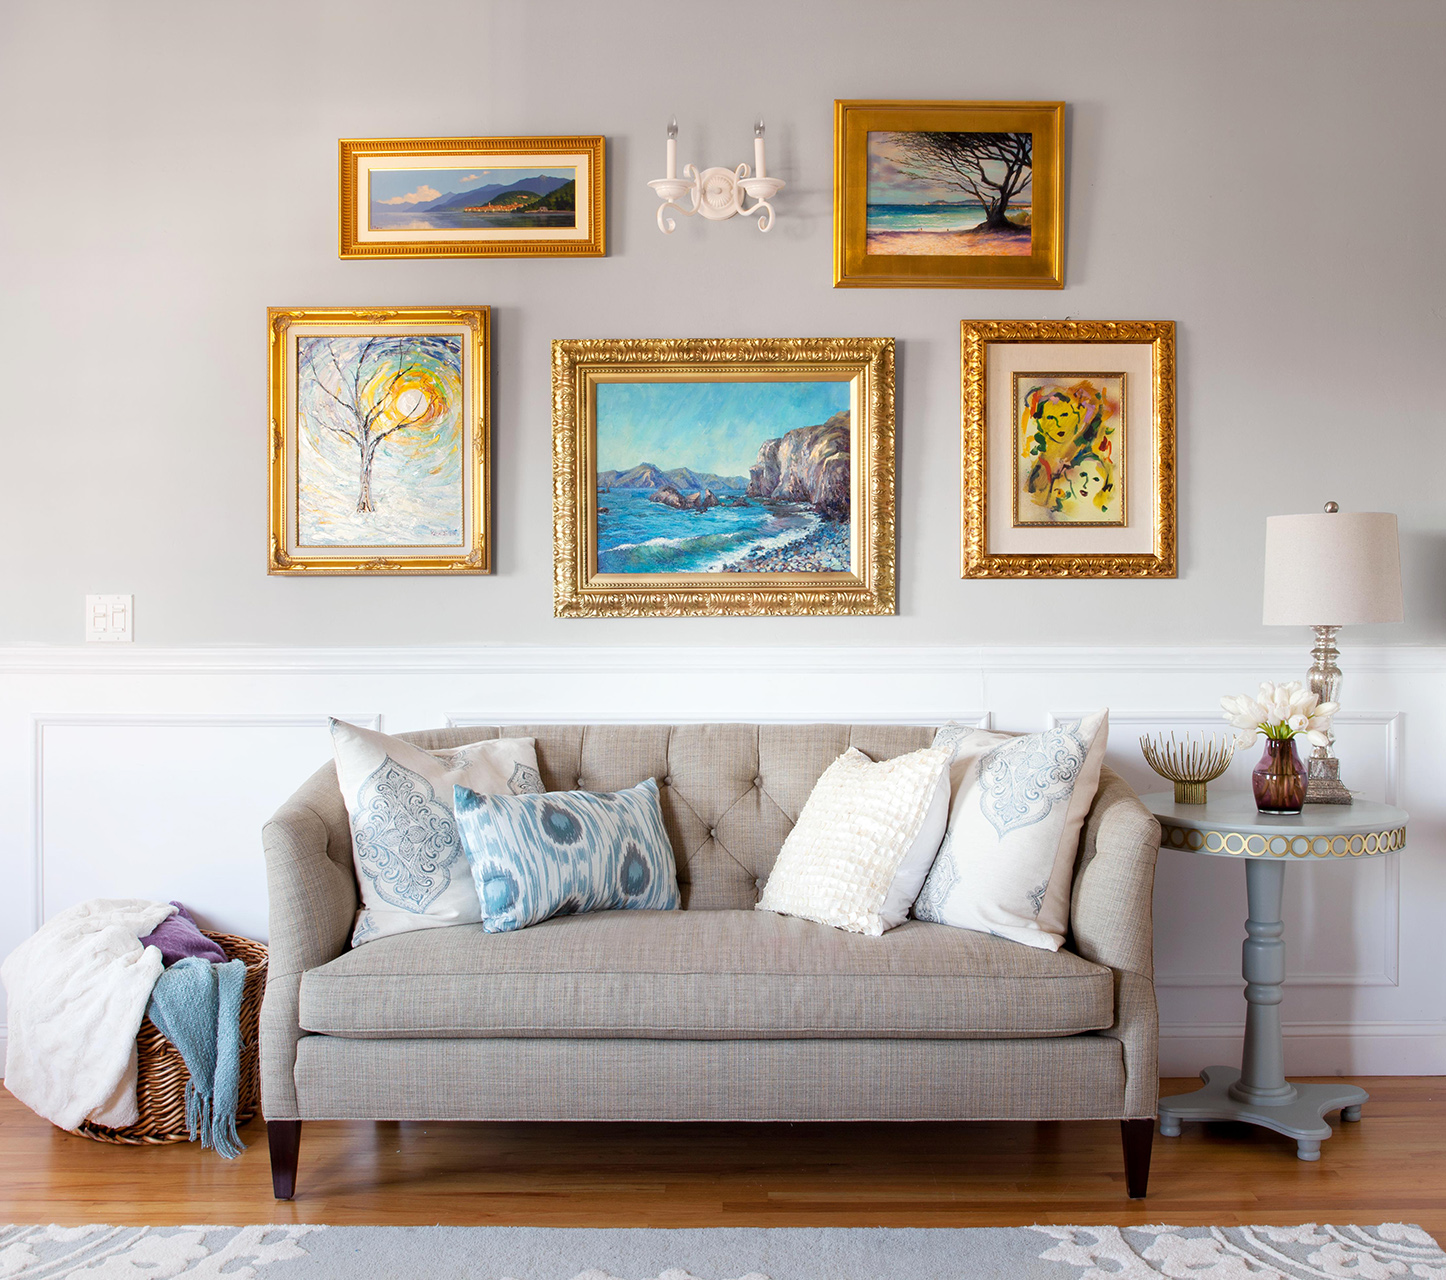 living room with gold framed artwork